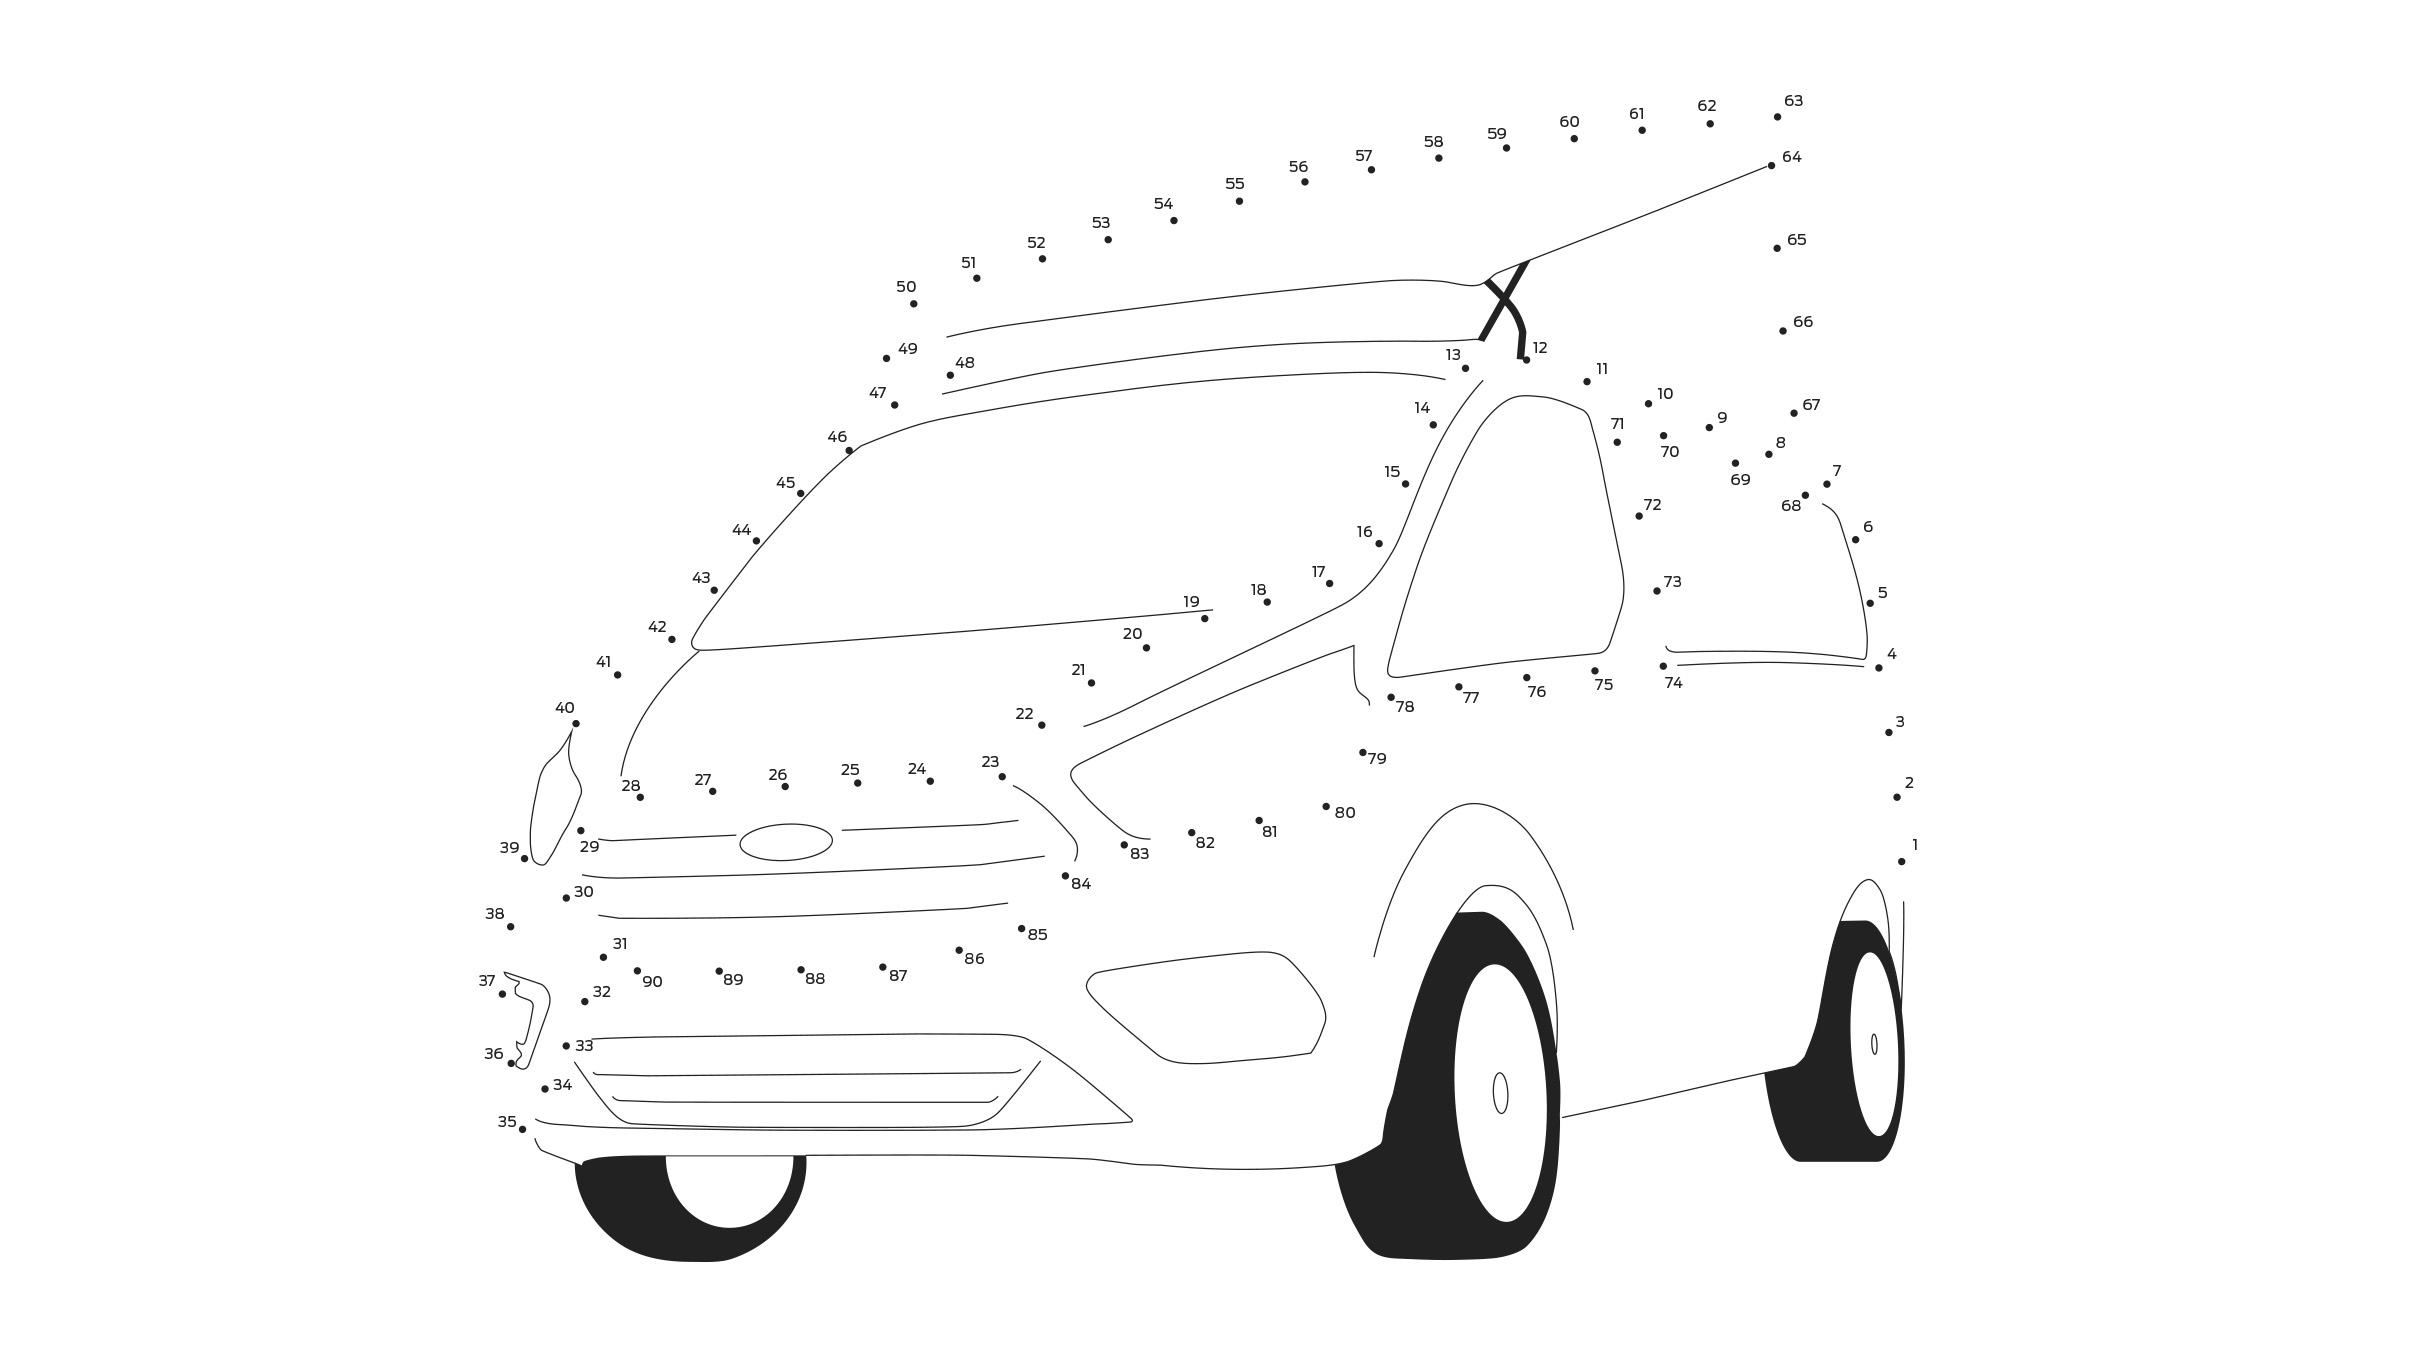 Ford Stay Home Transit Nugget dot to dot puzzle